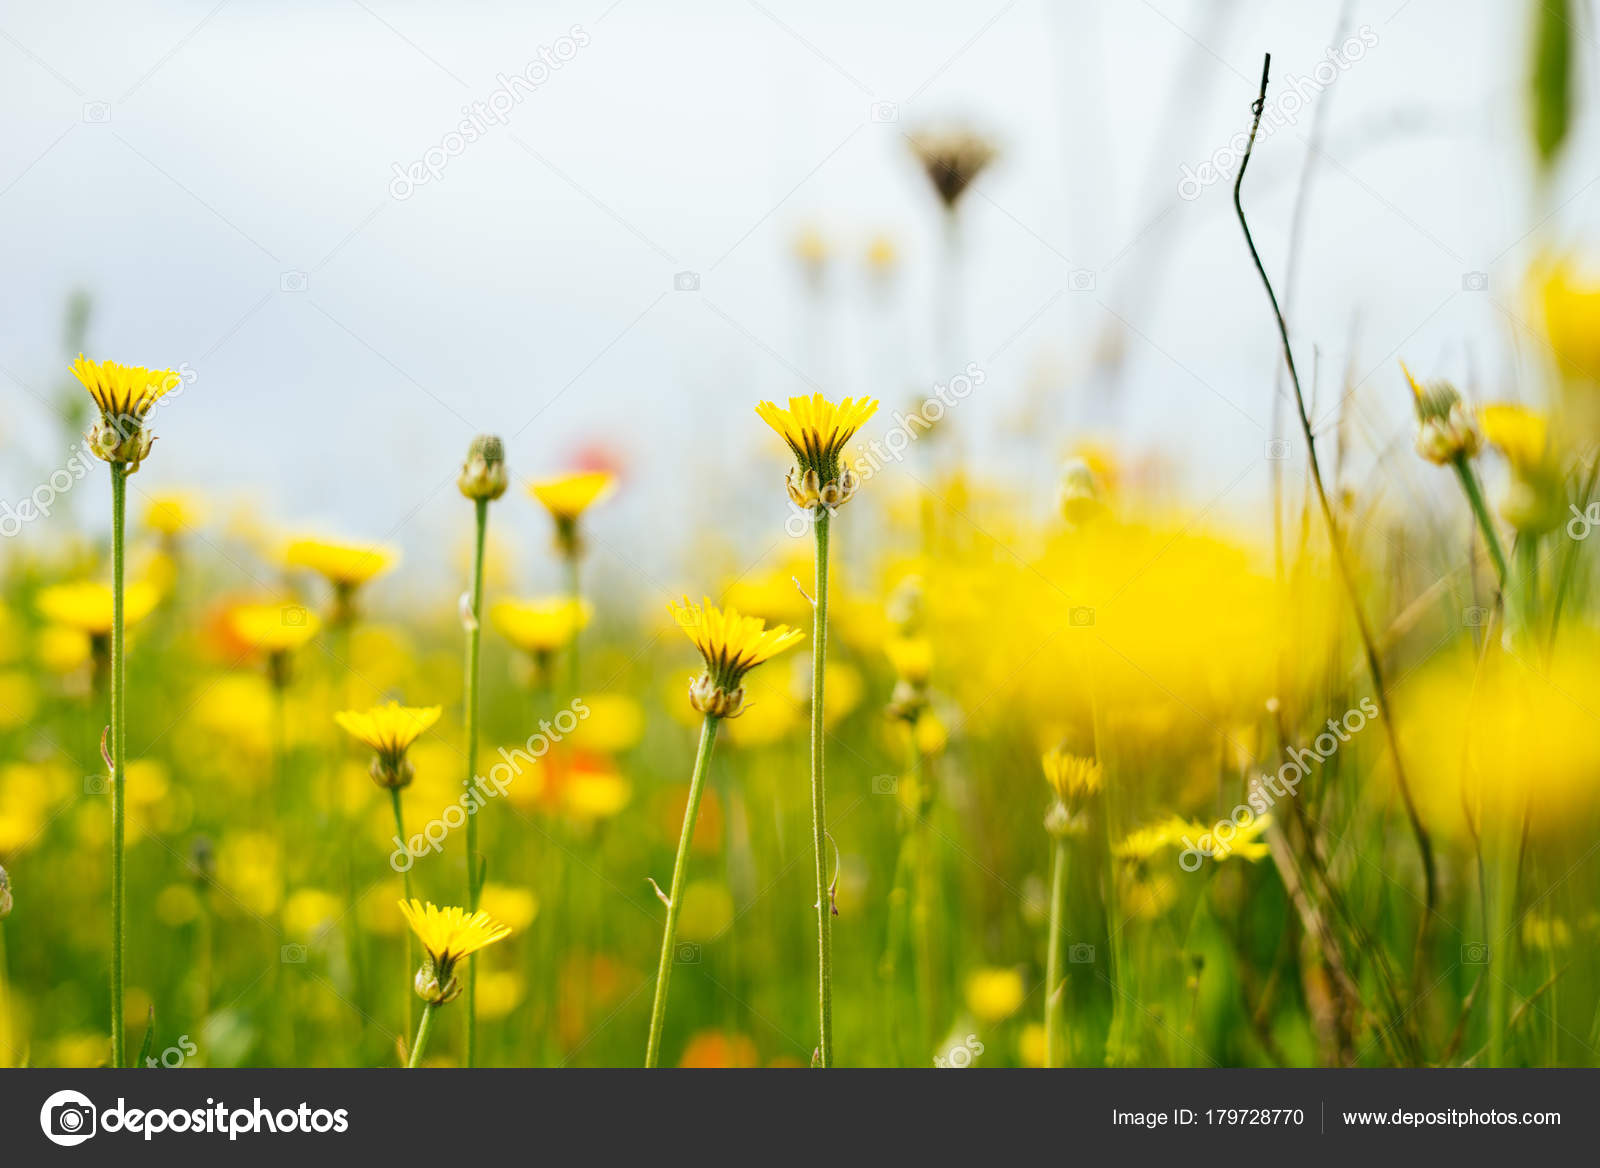 On The Endless Green Field Grow Spring Fragrant Yellow Flowers